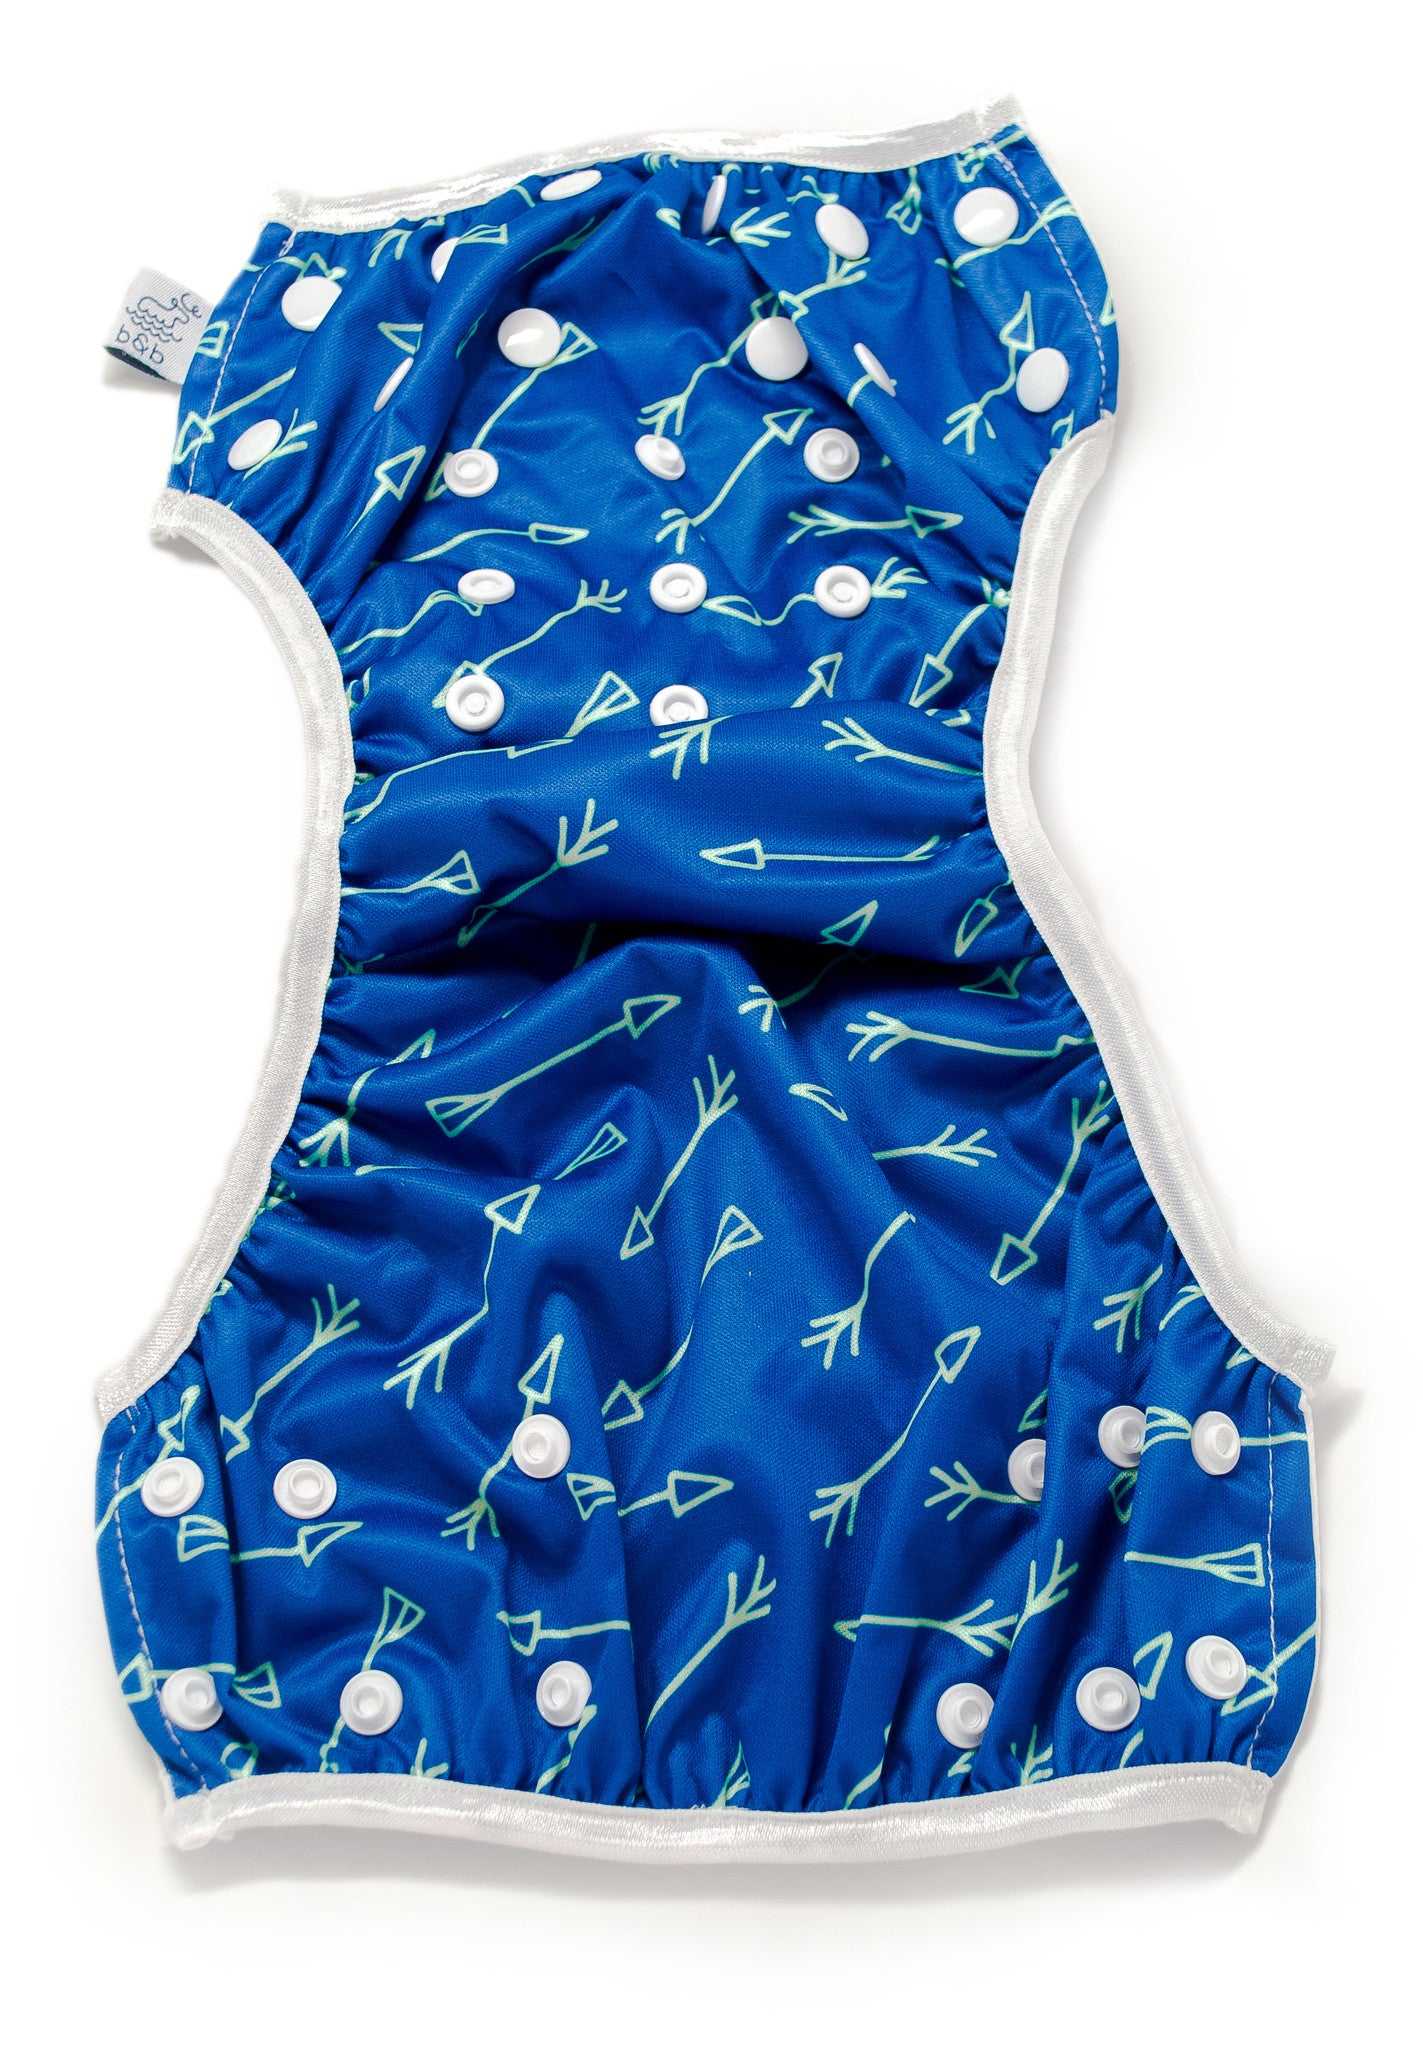 Beau and Belle Littles Swim Diaper, Regular Size, blue with green arrows unbuttoned and lain out open and flat